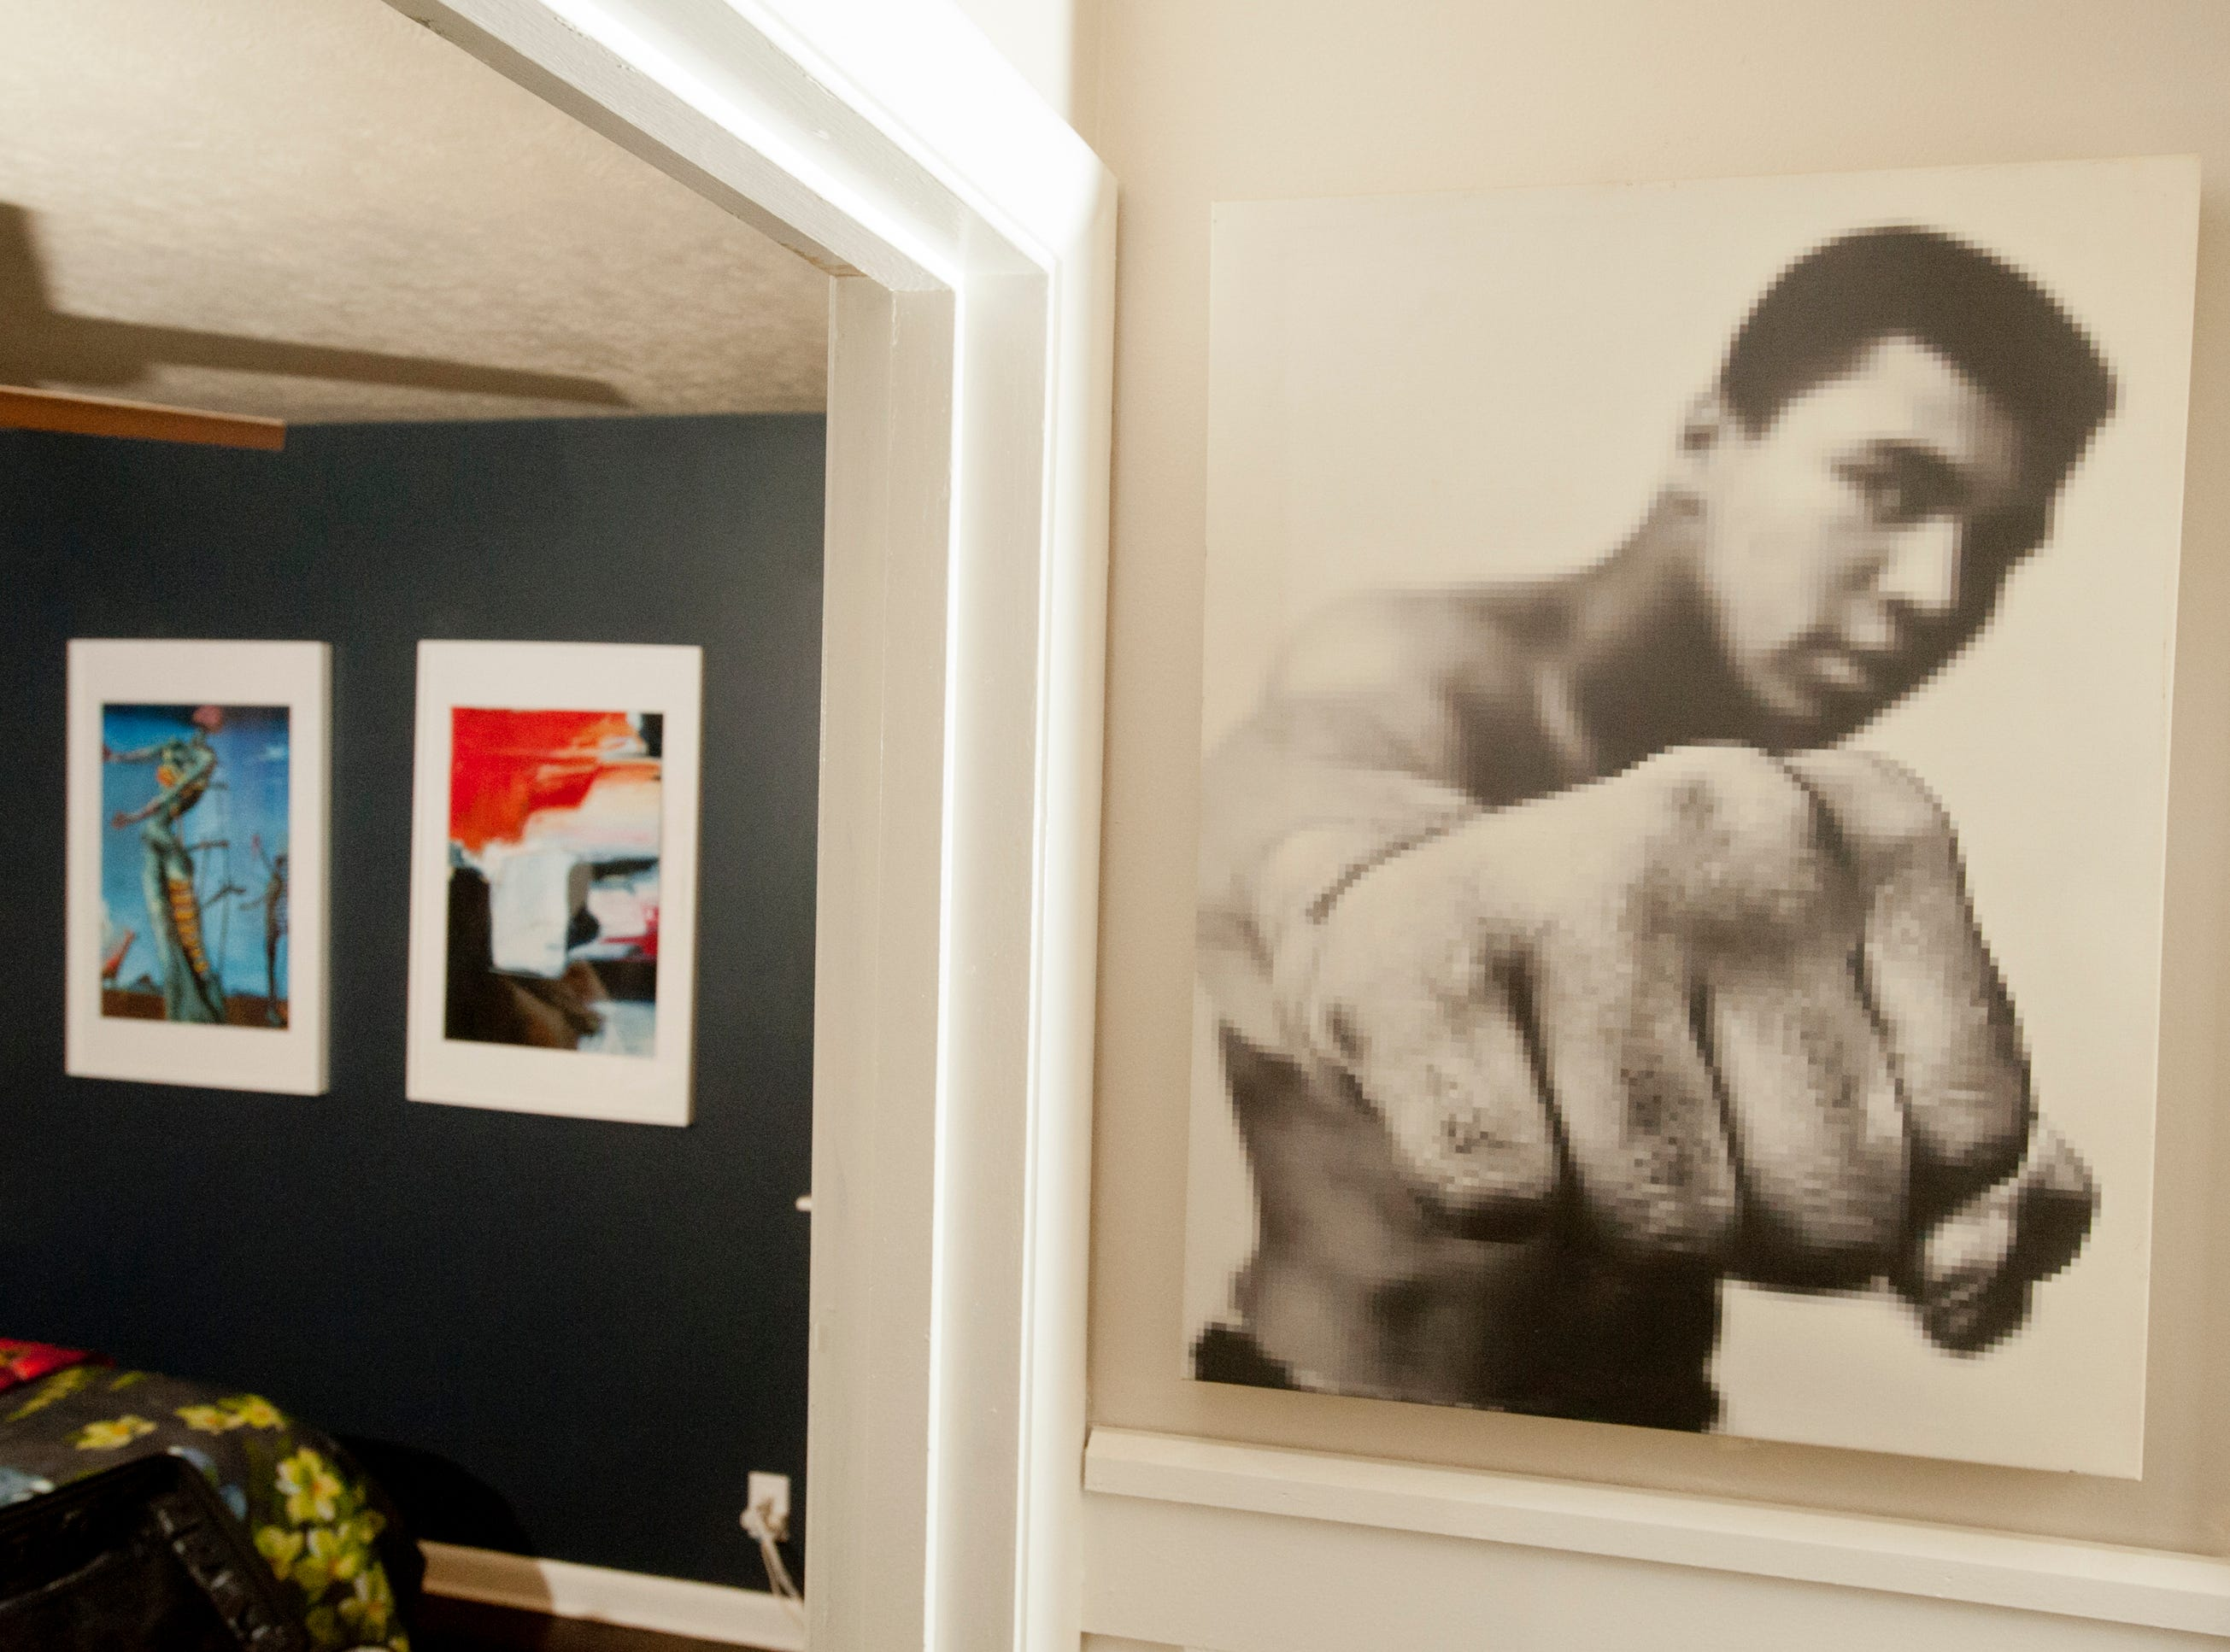 Squires' boyfriend, Zach Lorenzen, is a big Muhammad Ali fan, and a digital portrait of the champ that focuses on the boxer's fist, decorates the wall outside the master bedroom.